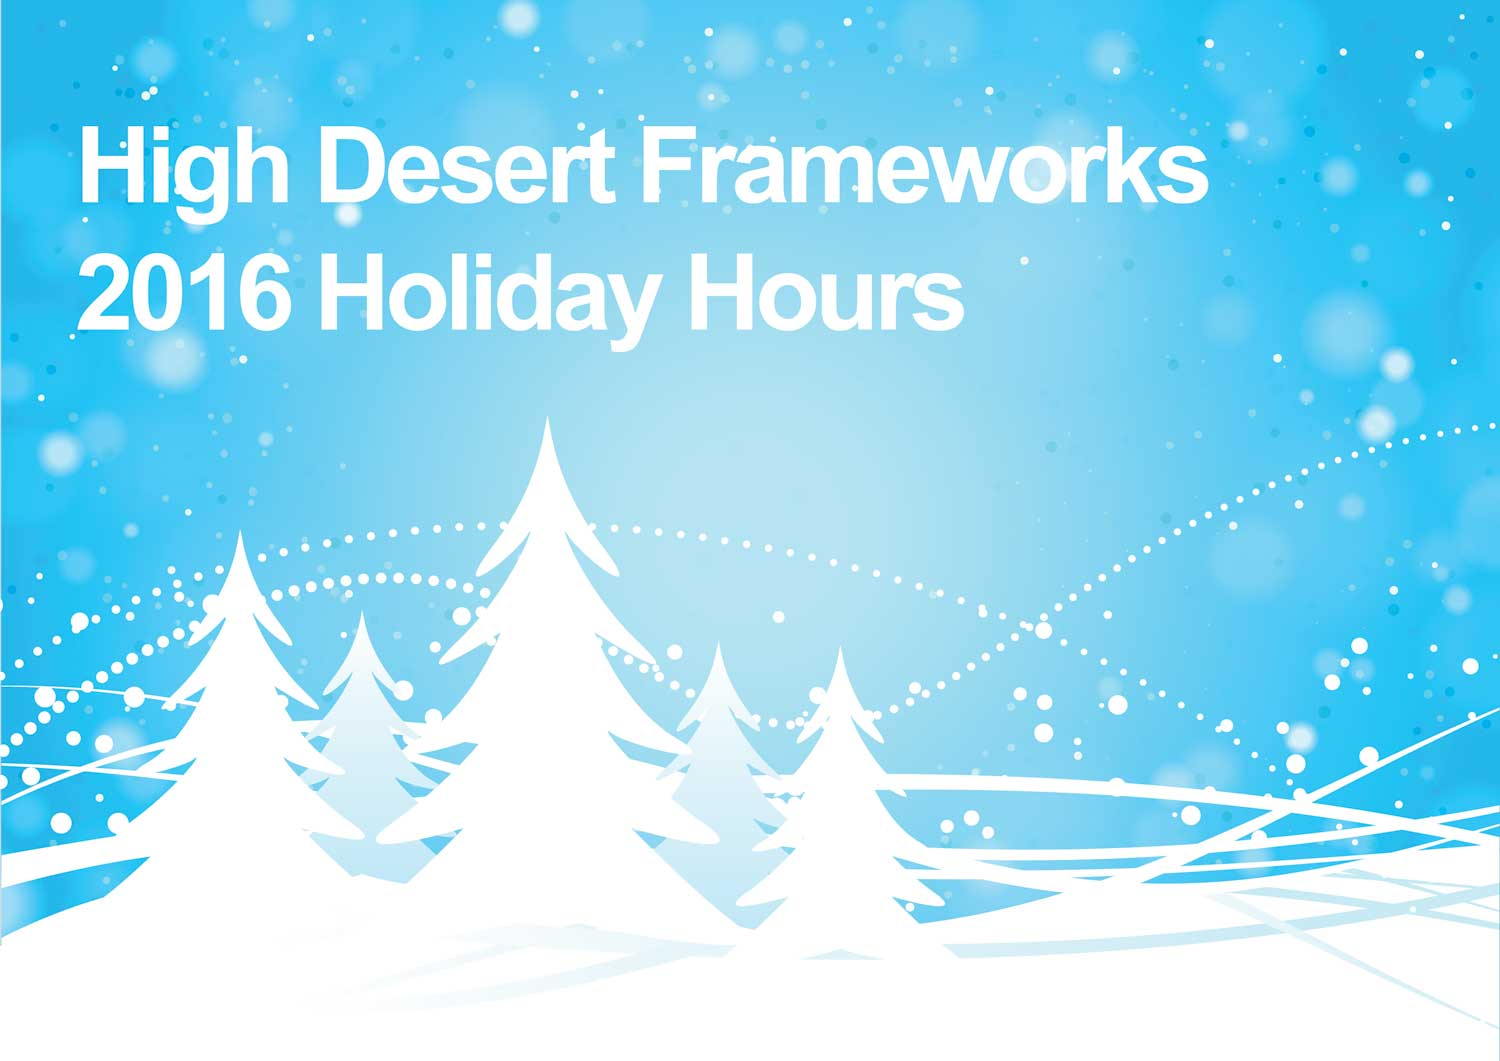 HDFW-2016HolidayHoursGraphic-1500x1061-WEB.jpg